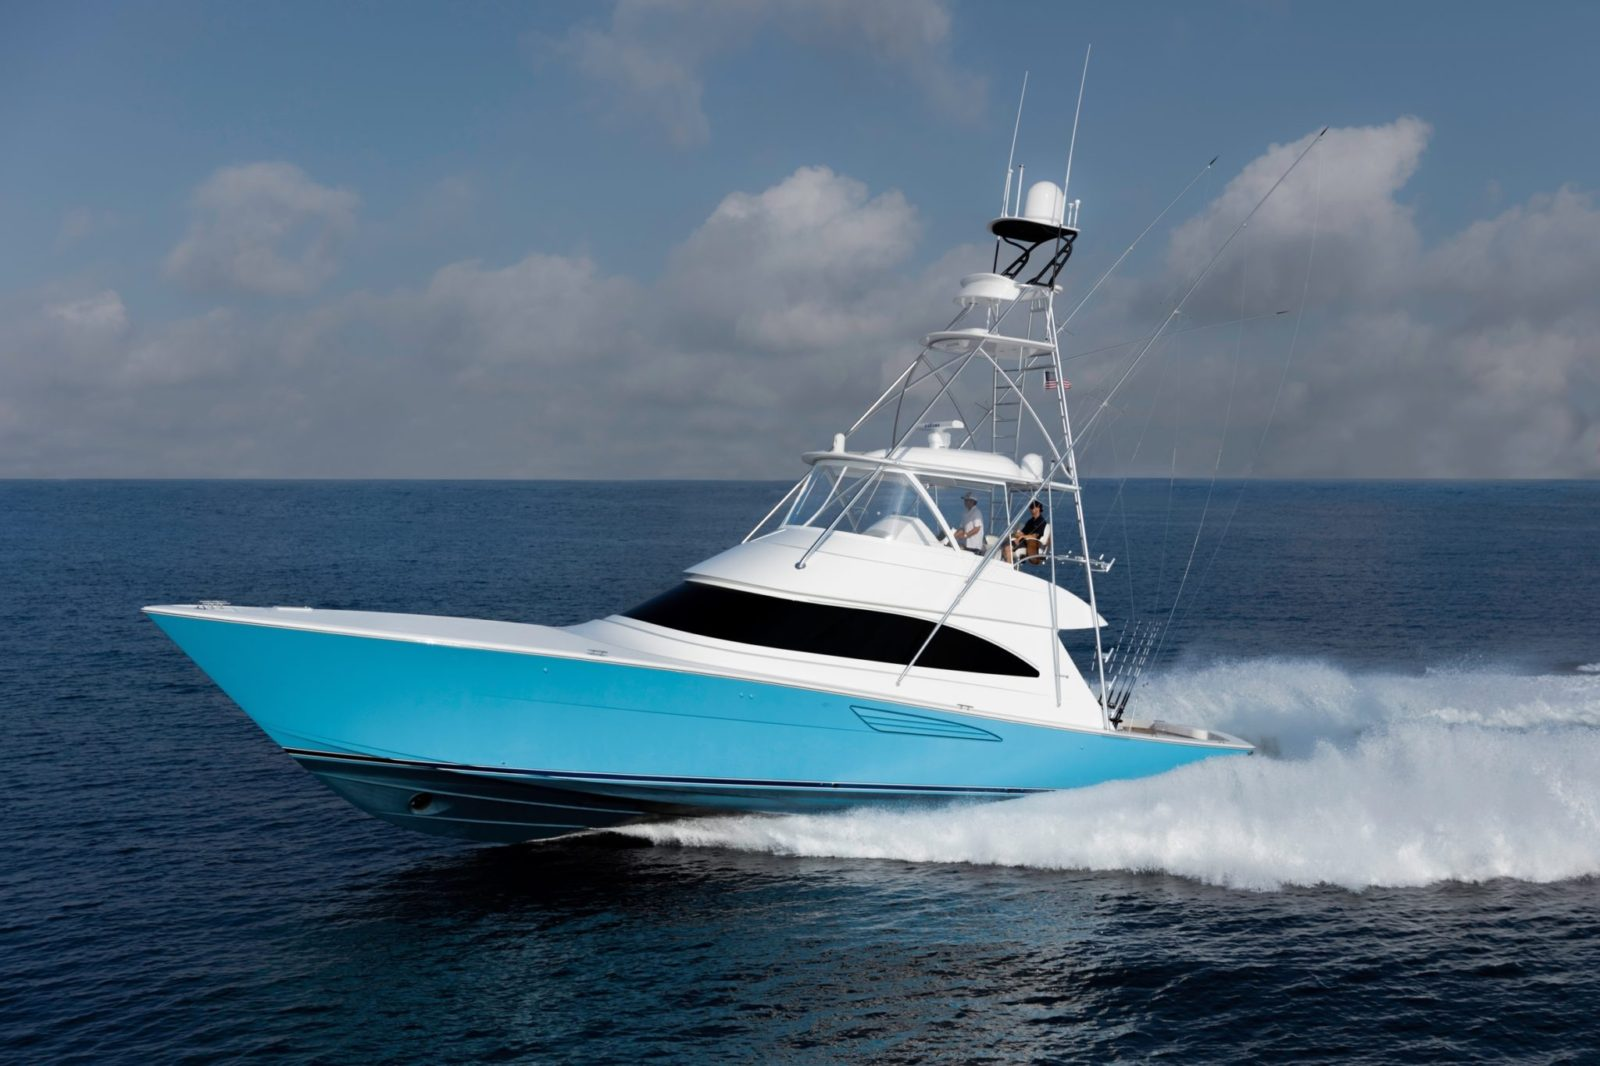 Luxury yacht for Sale | 58 Convertible by Viking Yachts